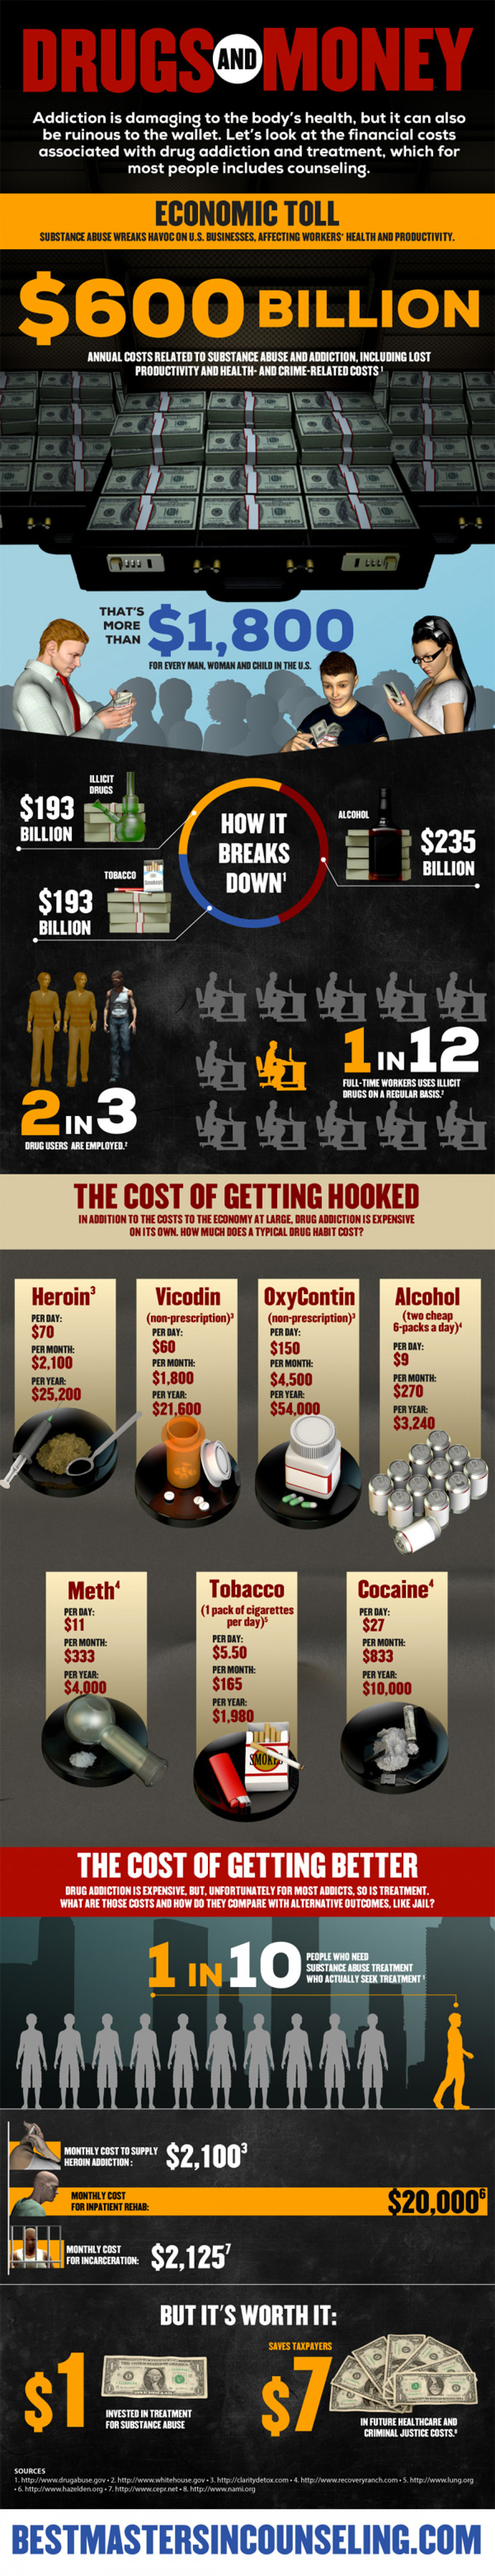 Drugs and Money Infographic